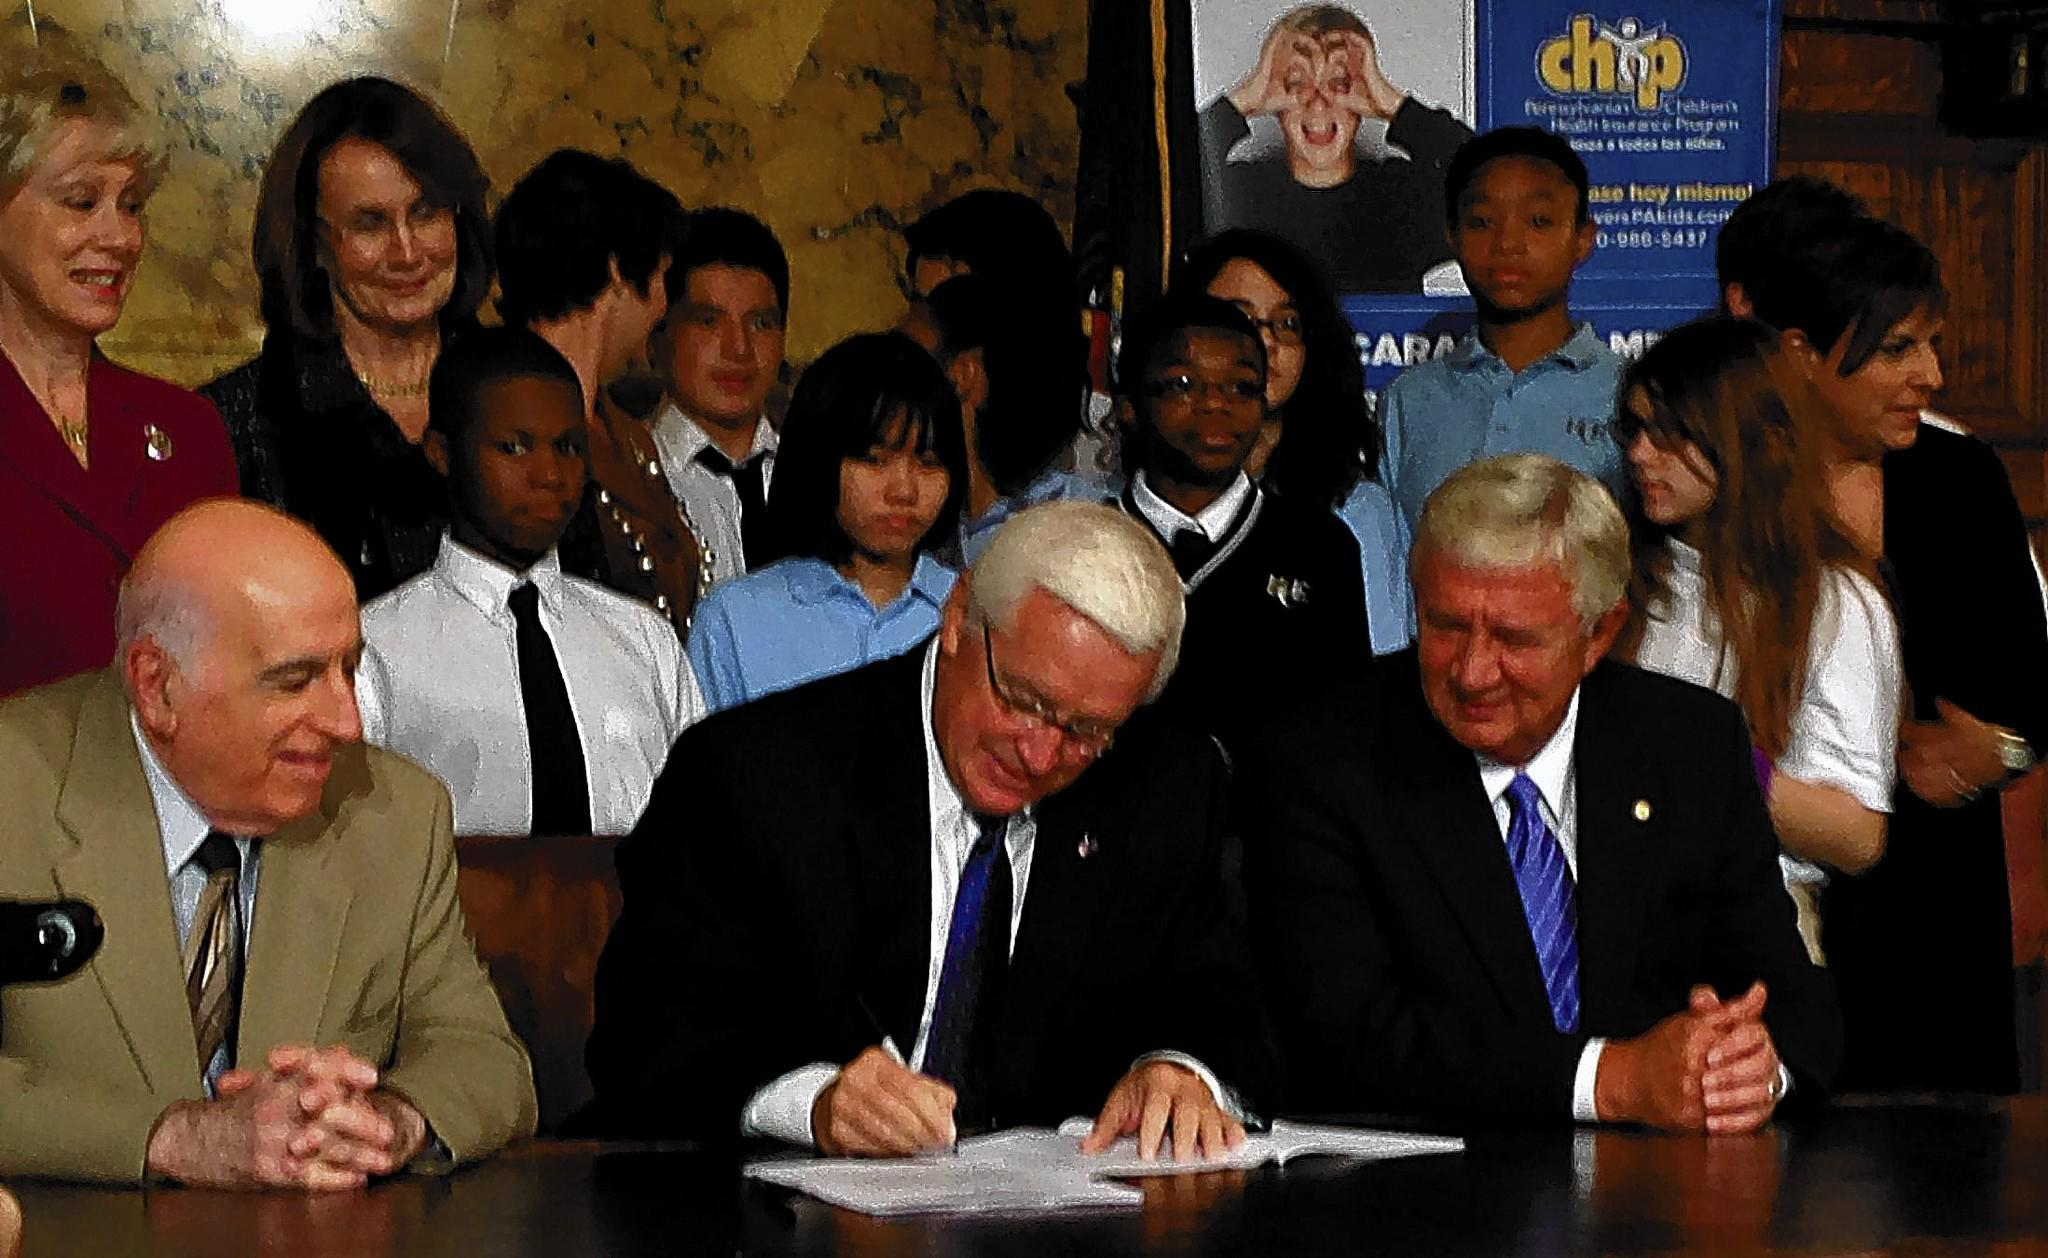 Gov. Corbett, flanked by Rep. Nick Micozzie, R-Delaware, and Sen. Don White, R-Indiana, signs a law that ends a six-month wait for the Children's Health Insurance Program.